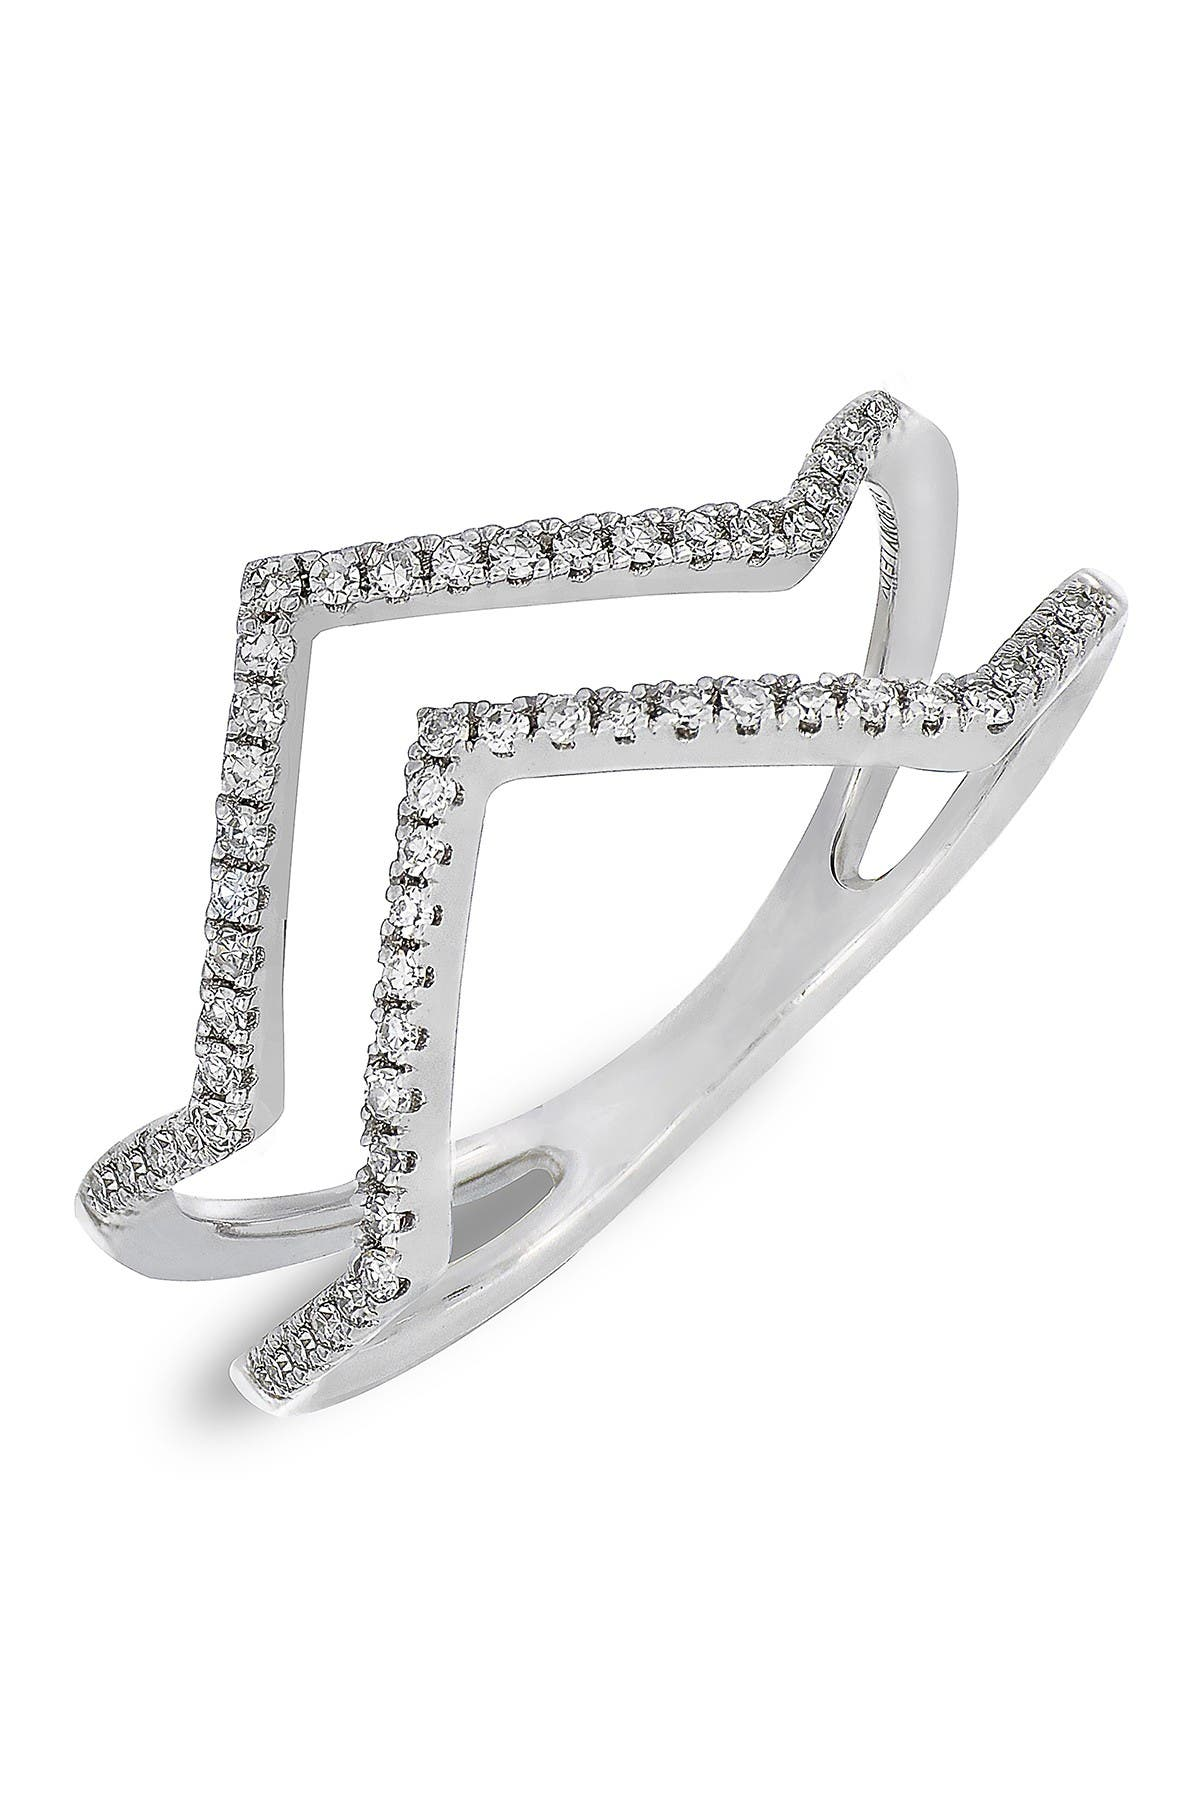 Image of Carriere Sterling Silver Pave Diamond Zigzag Double Band Ring - 0.17 ctw